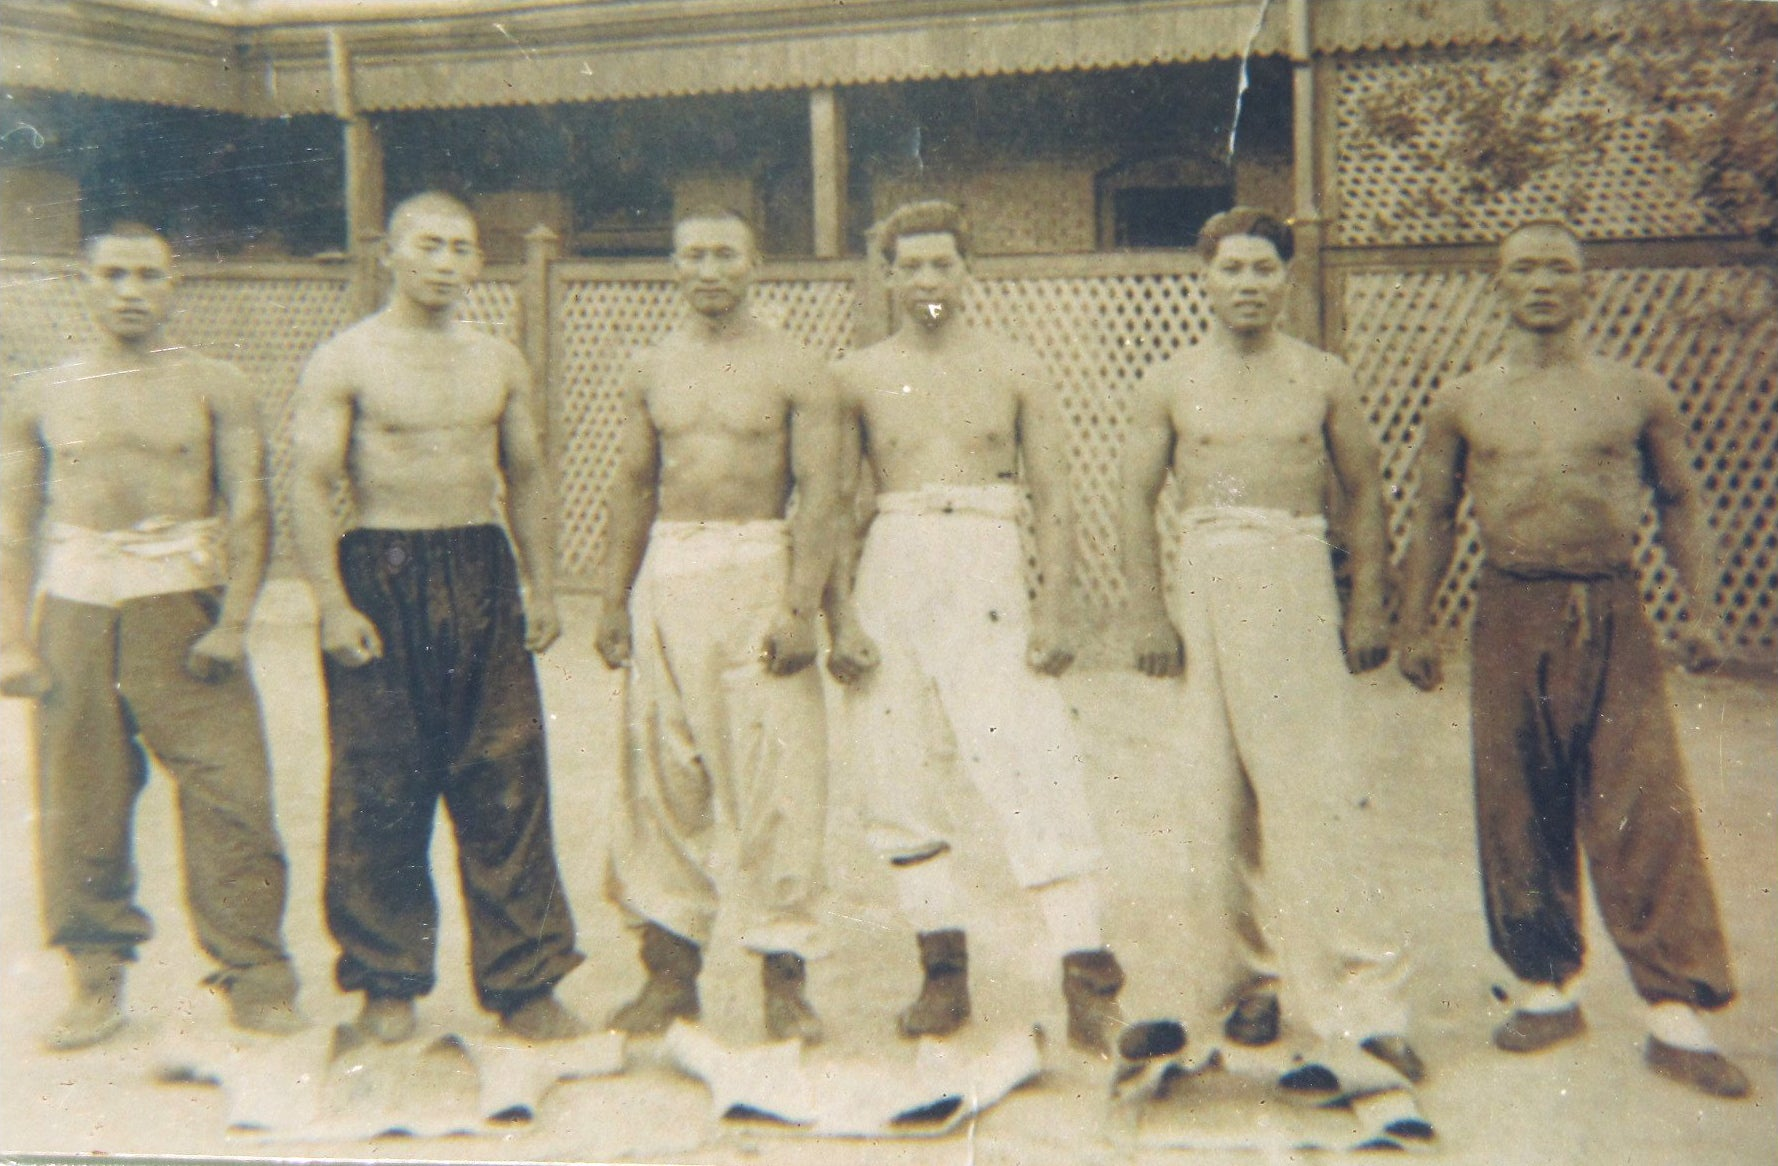 Photo 5 Courtesy: Wiki Commons, Six Shuāi Jiāo masters in Tianjin, 1930. From left to right: Zhāng Liánchéng (张连成), Zhāng Hóngyù (张鸿玉), Wáng Wénhǎi (王文海), Shǐ Ēnfù (史恩富), Mǎ Wénpíng (马文平) and Wáng Hǎizhēng (王海烝).